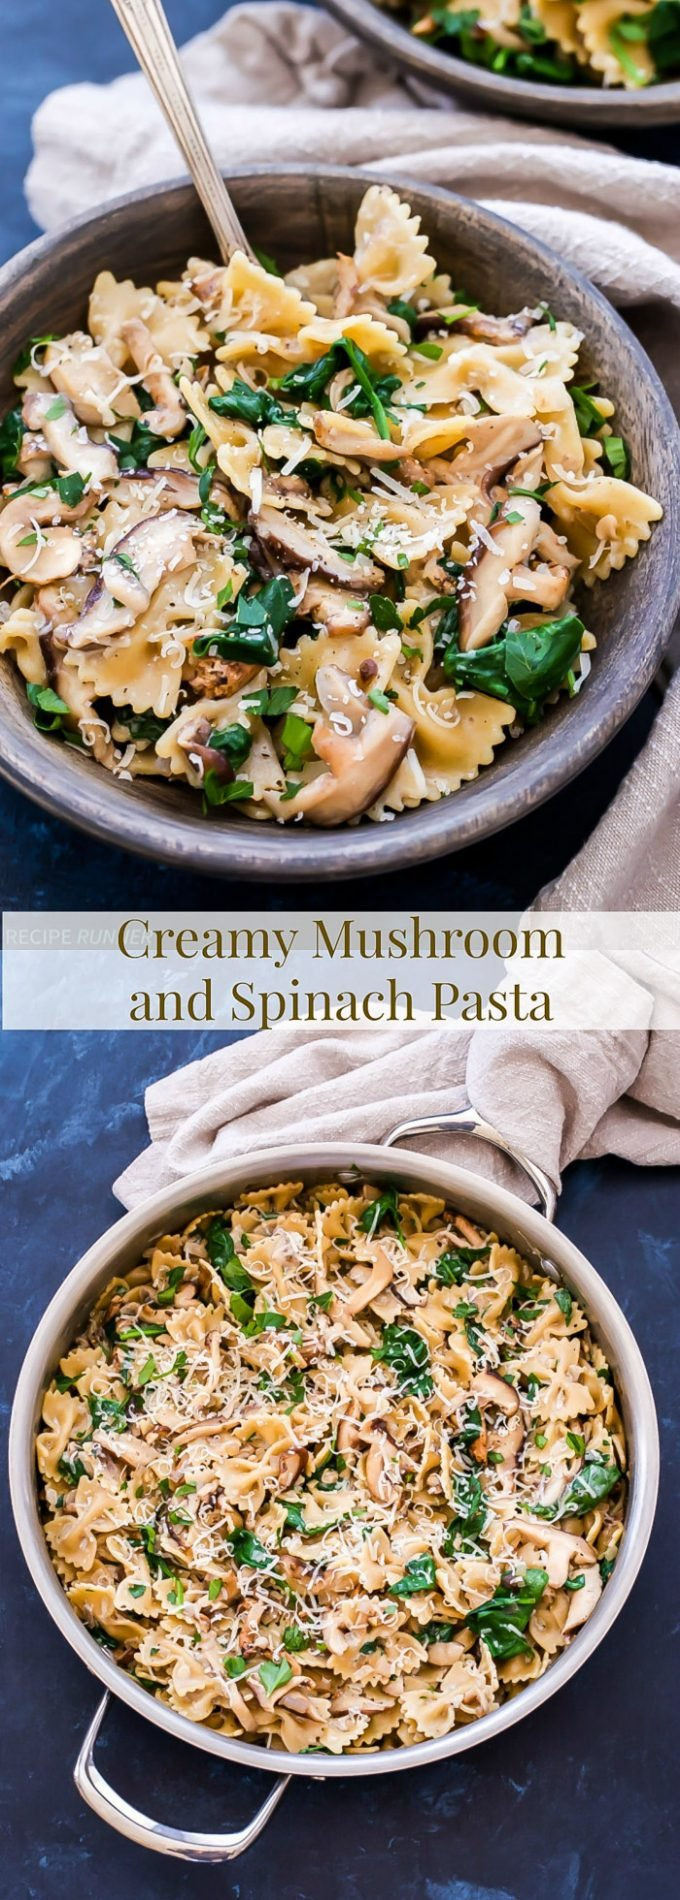 Creamy Mushroom and Spinach Pasta is an easy, but elegant vegetarian pasta dish. Hearty mushrooms and whole wheat pasta make it a filling main dish without any meat!